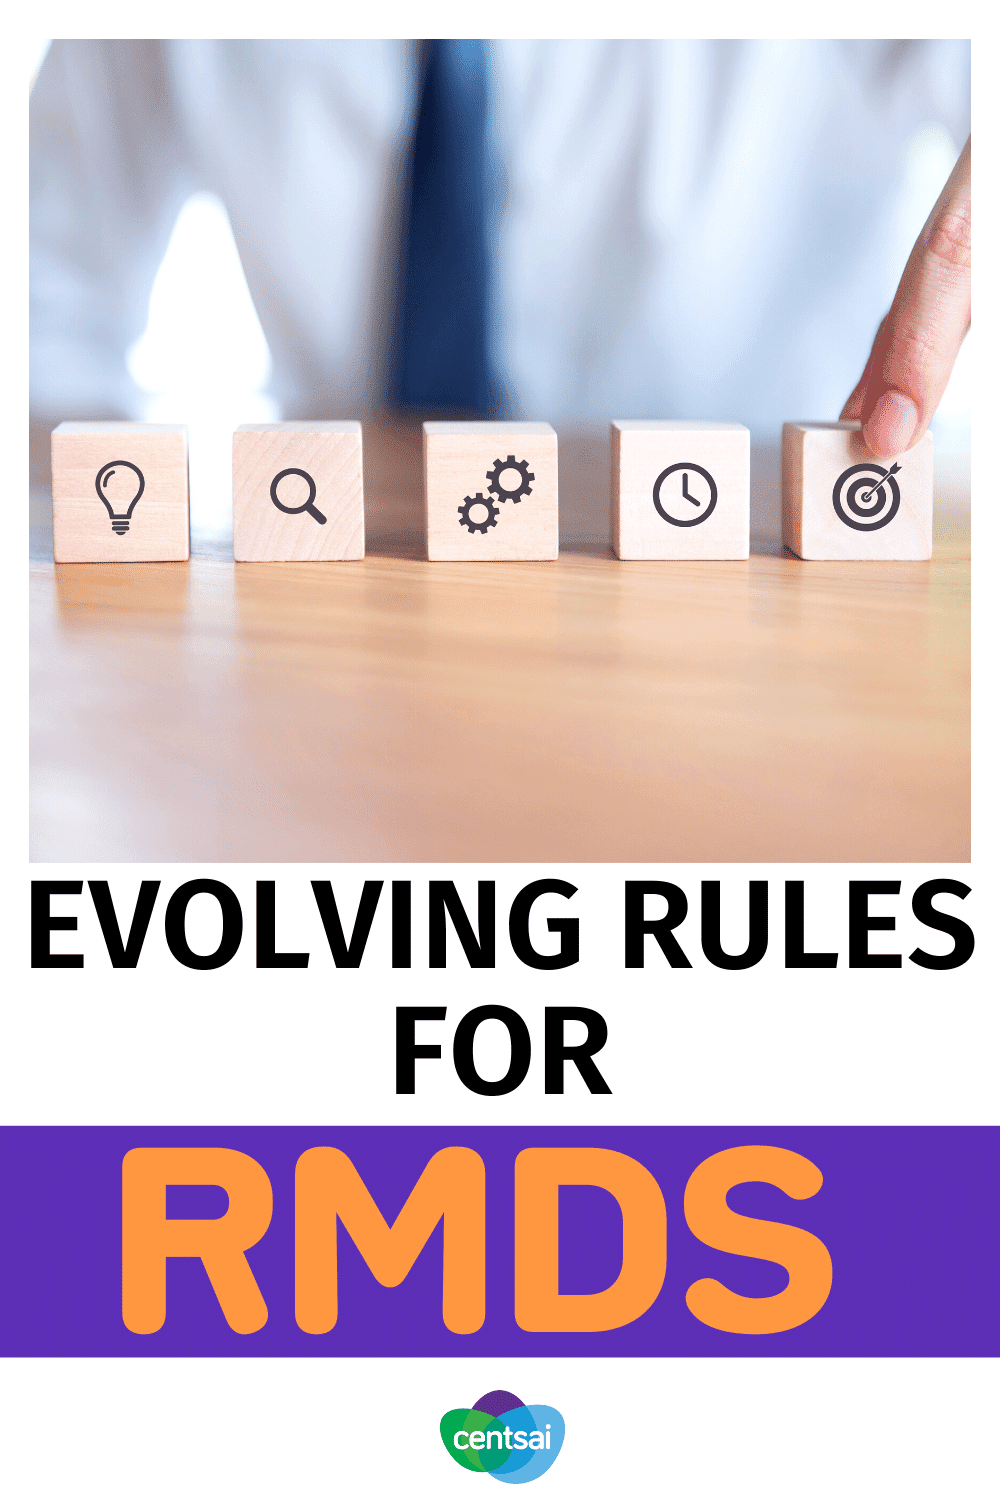 Evolving Rules for RMDs